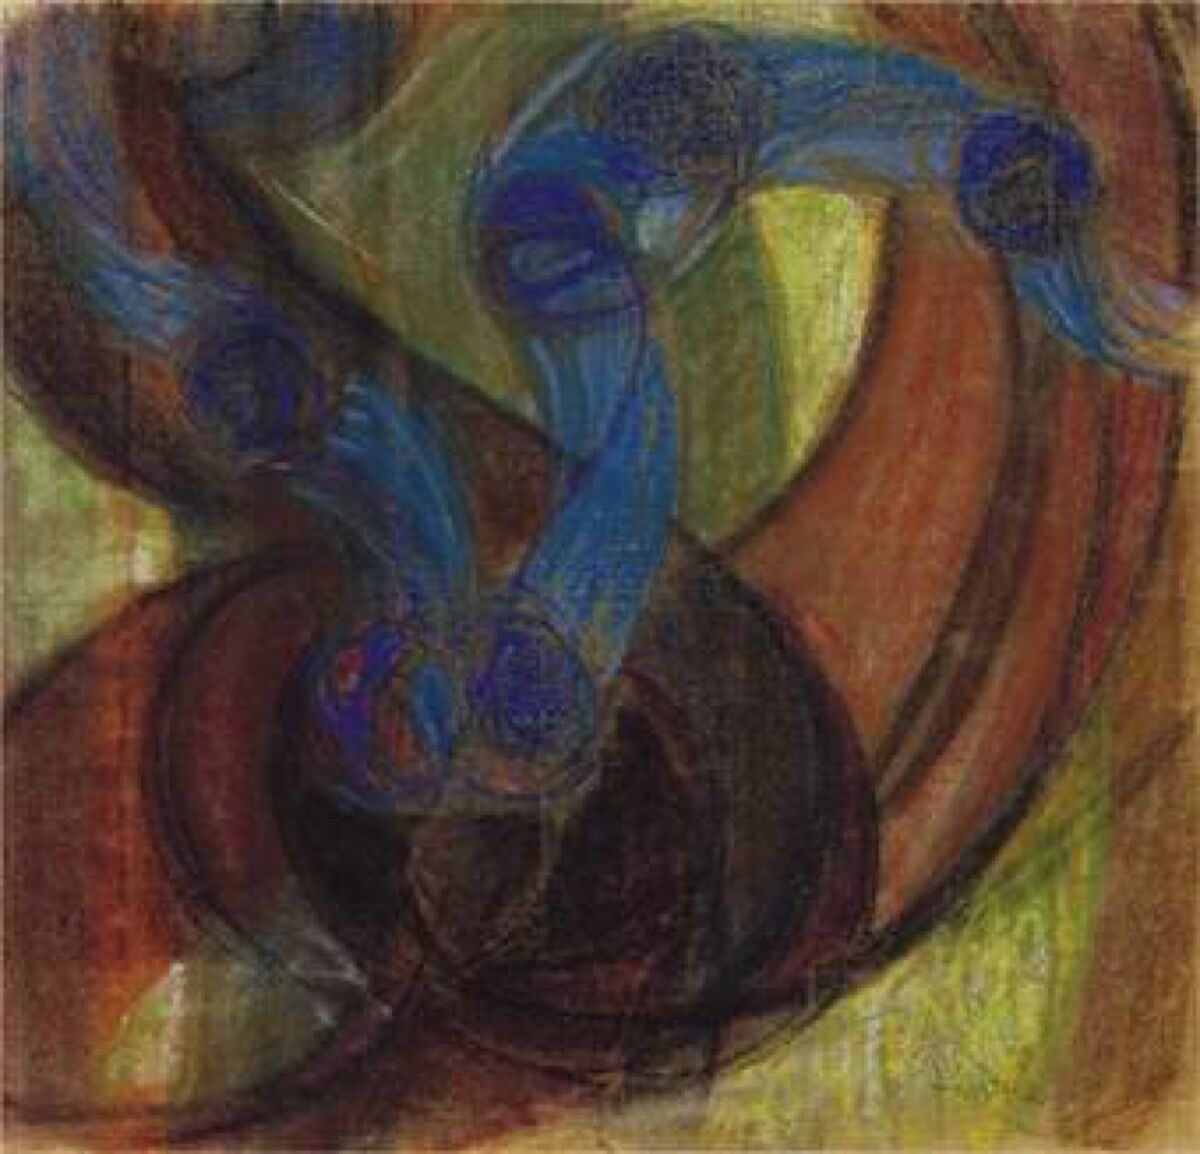 František Kupka Study for Amorpha, Warm Chromatic and for Fugue in two colors; Study for The Fugue, 1910–11. The Solomon R. Guggenheim Foundation Peggy Guggenheim Collection, Venice, 1976. © 2017 Artists Rights Society (ARS), New York/ADAGP, Paris.